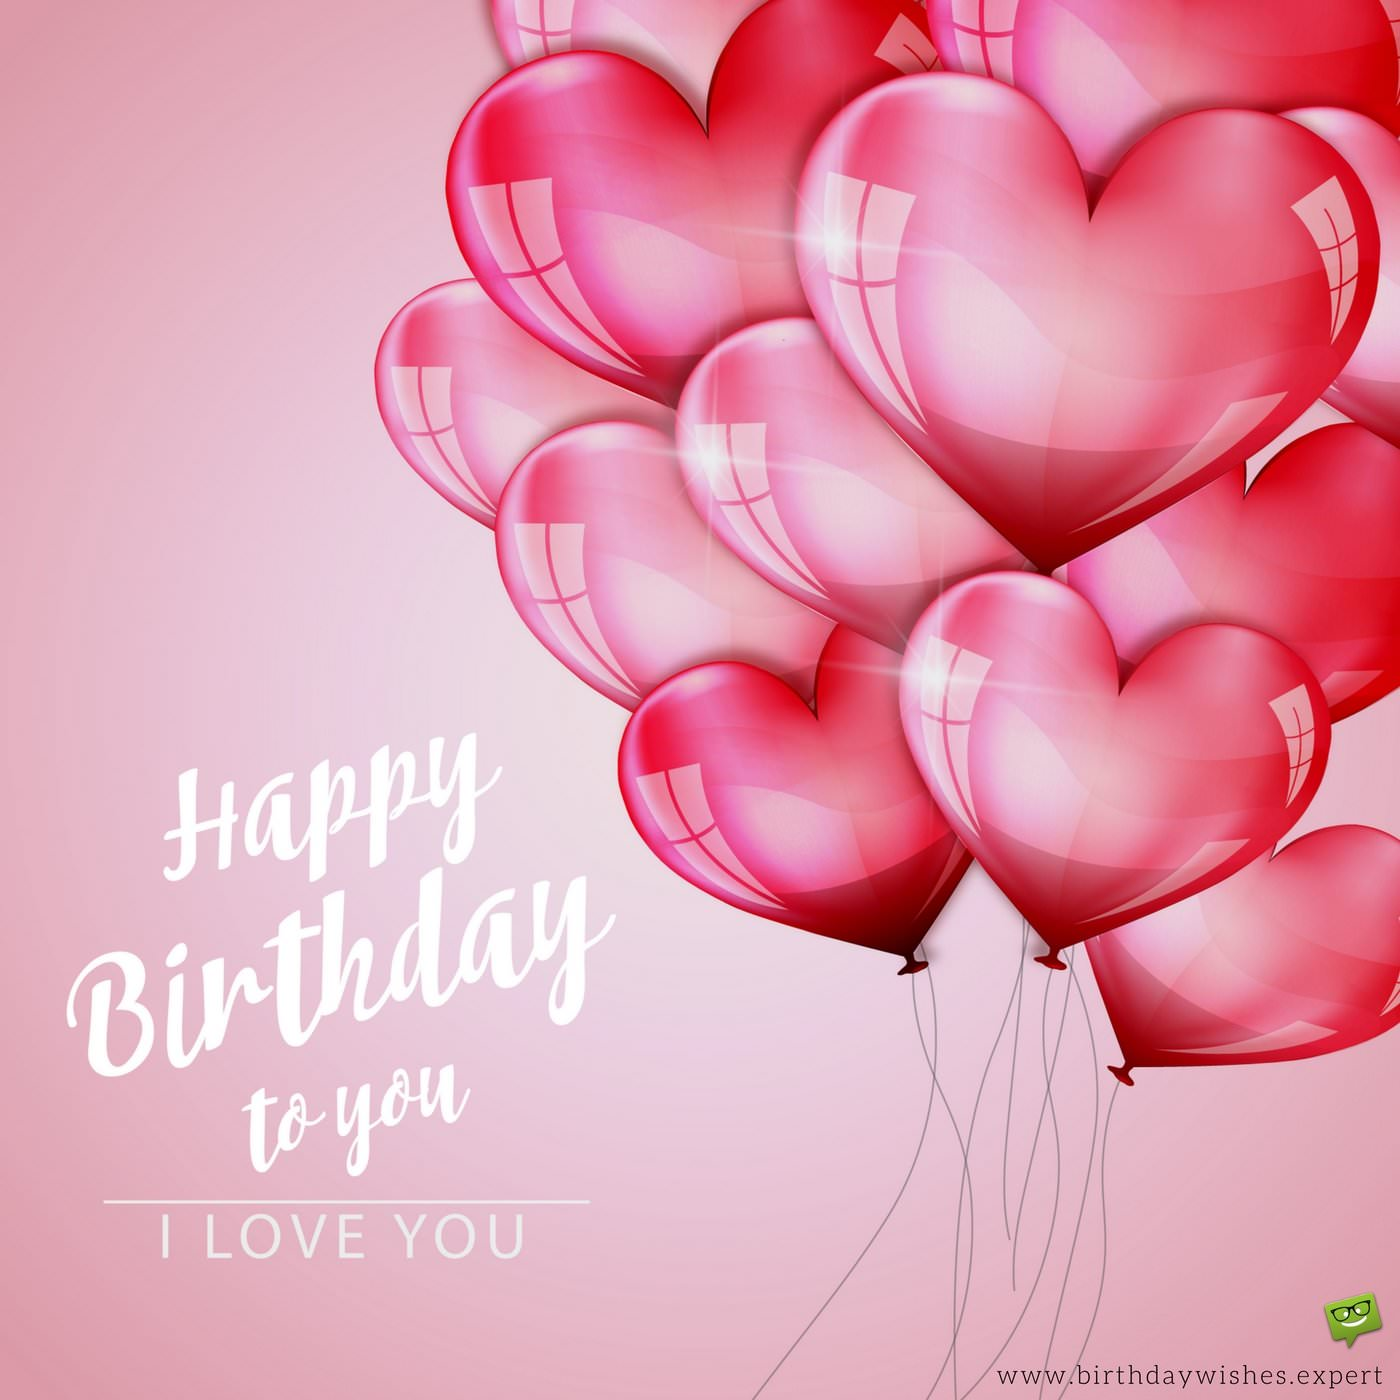 birthday wish for fiance girl ; Birthday-wish-for-girlfriend-on-image-with-heart-shaped-love-balloons